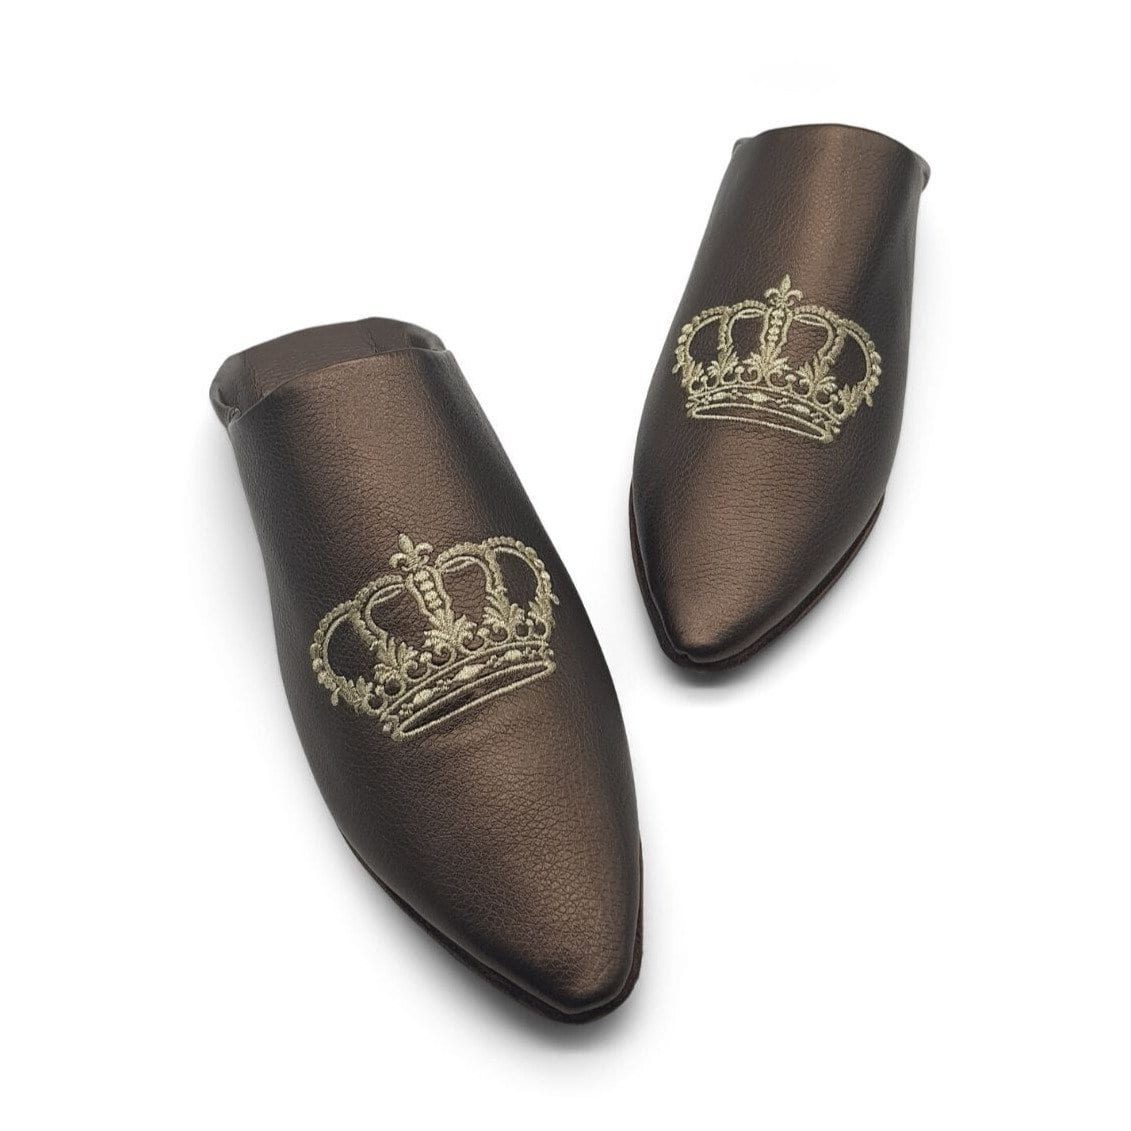 BOOSH ROYALE MOCHA Leather Moroccan Slippers